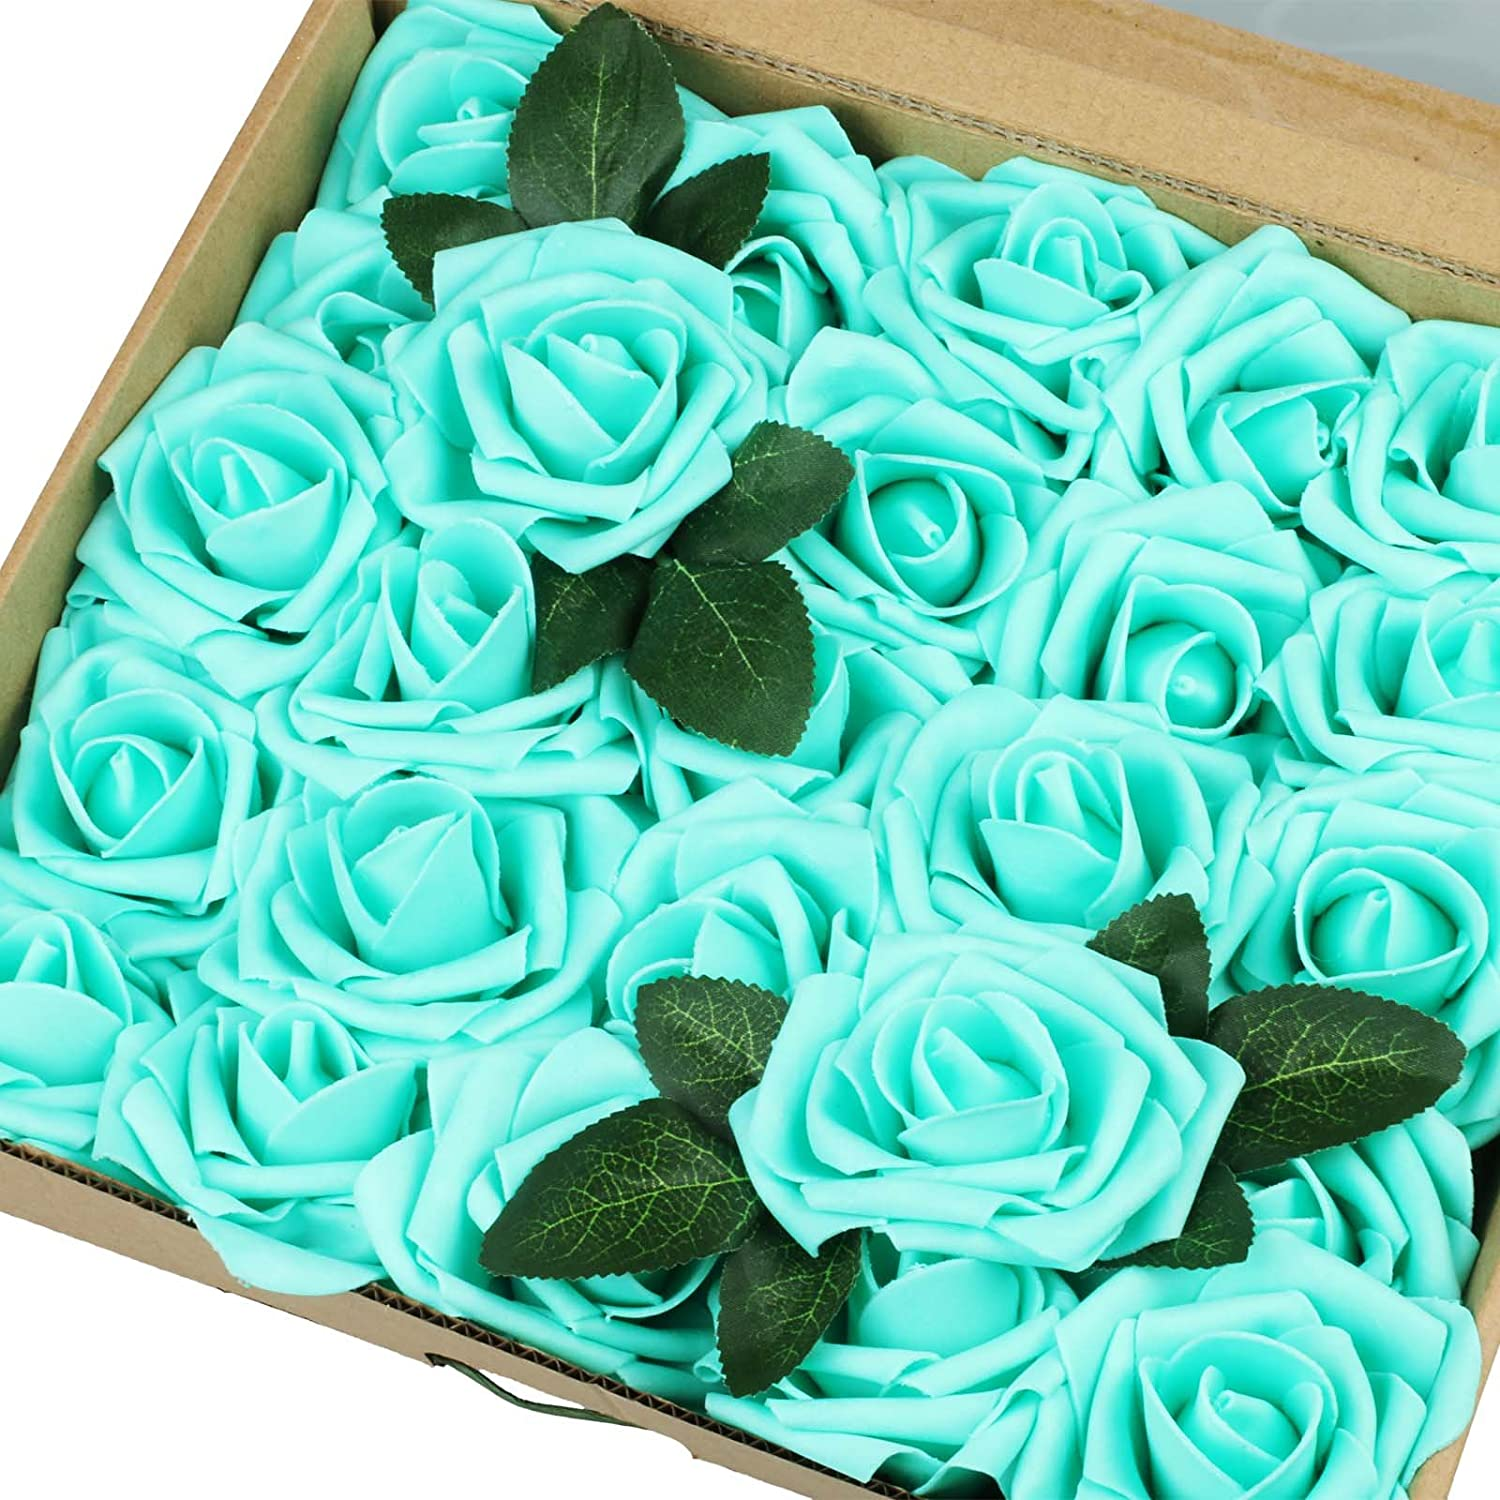 IngTall Artificial Flowers 25pcs Real Max 61% OFF Blue Tiffany Looking Fake OFFicial